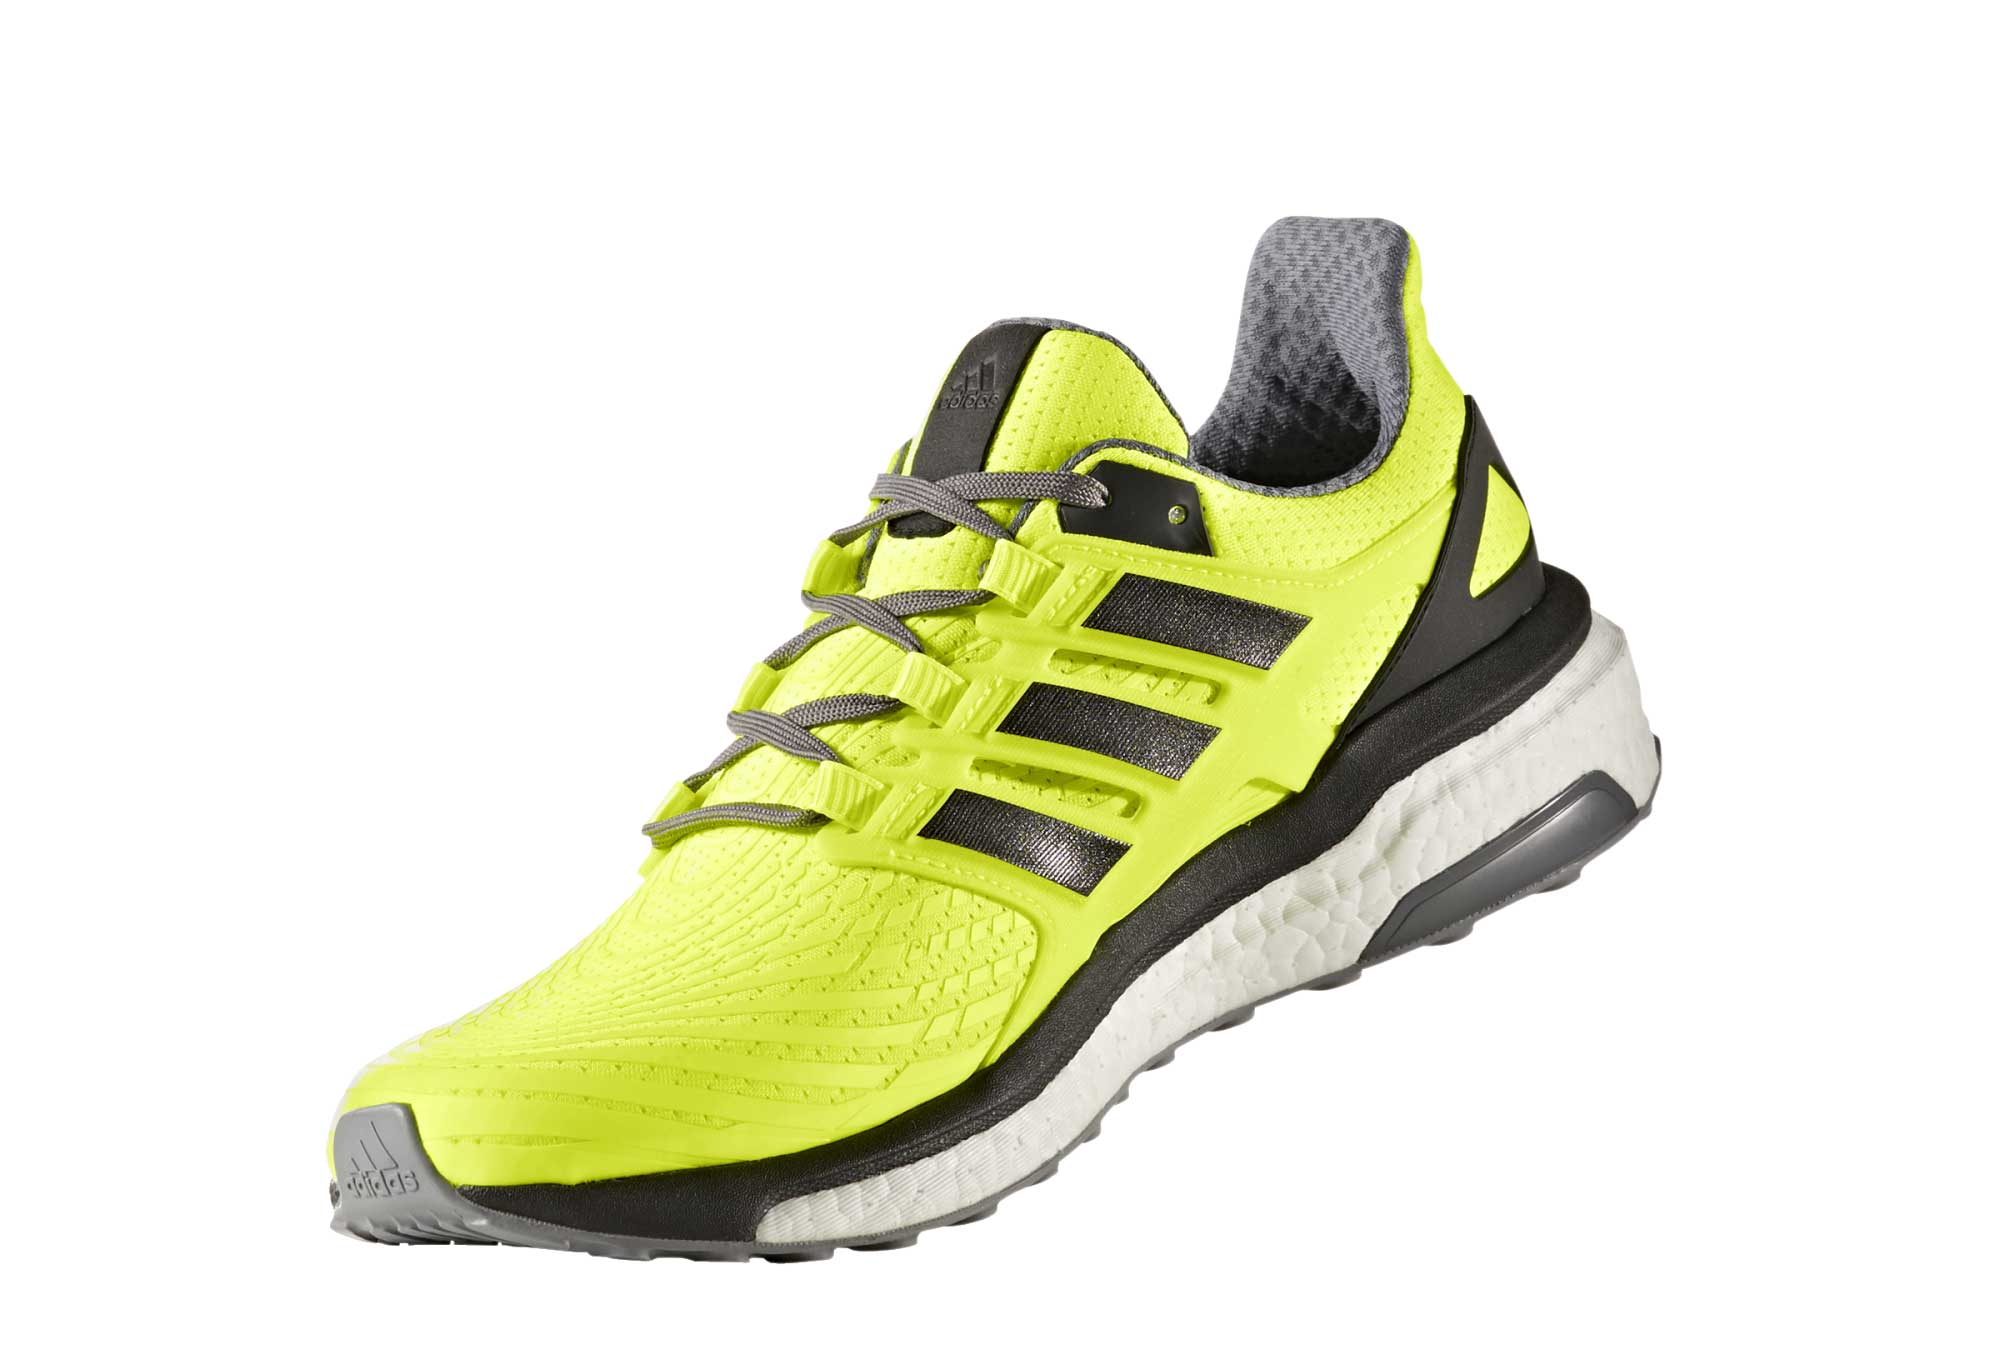 Energy De Fluo Chaussures Adidas Running Boost Jaune bY6yIf7vmg